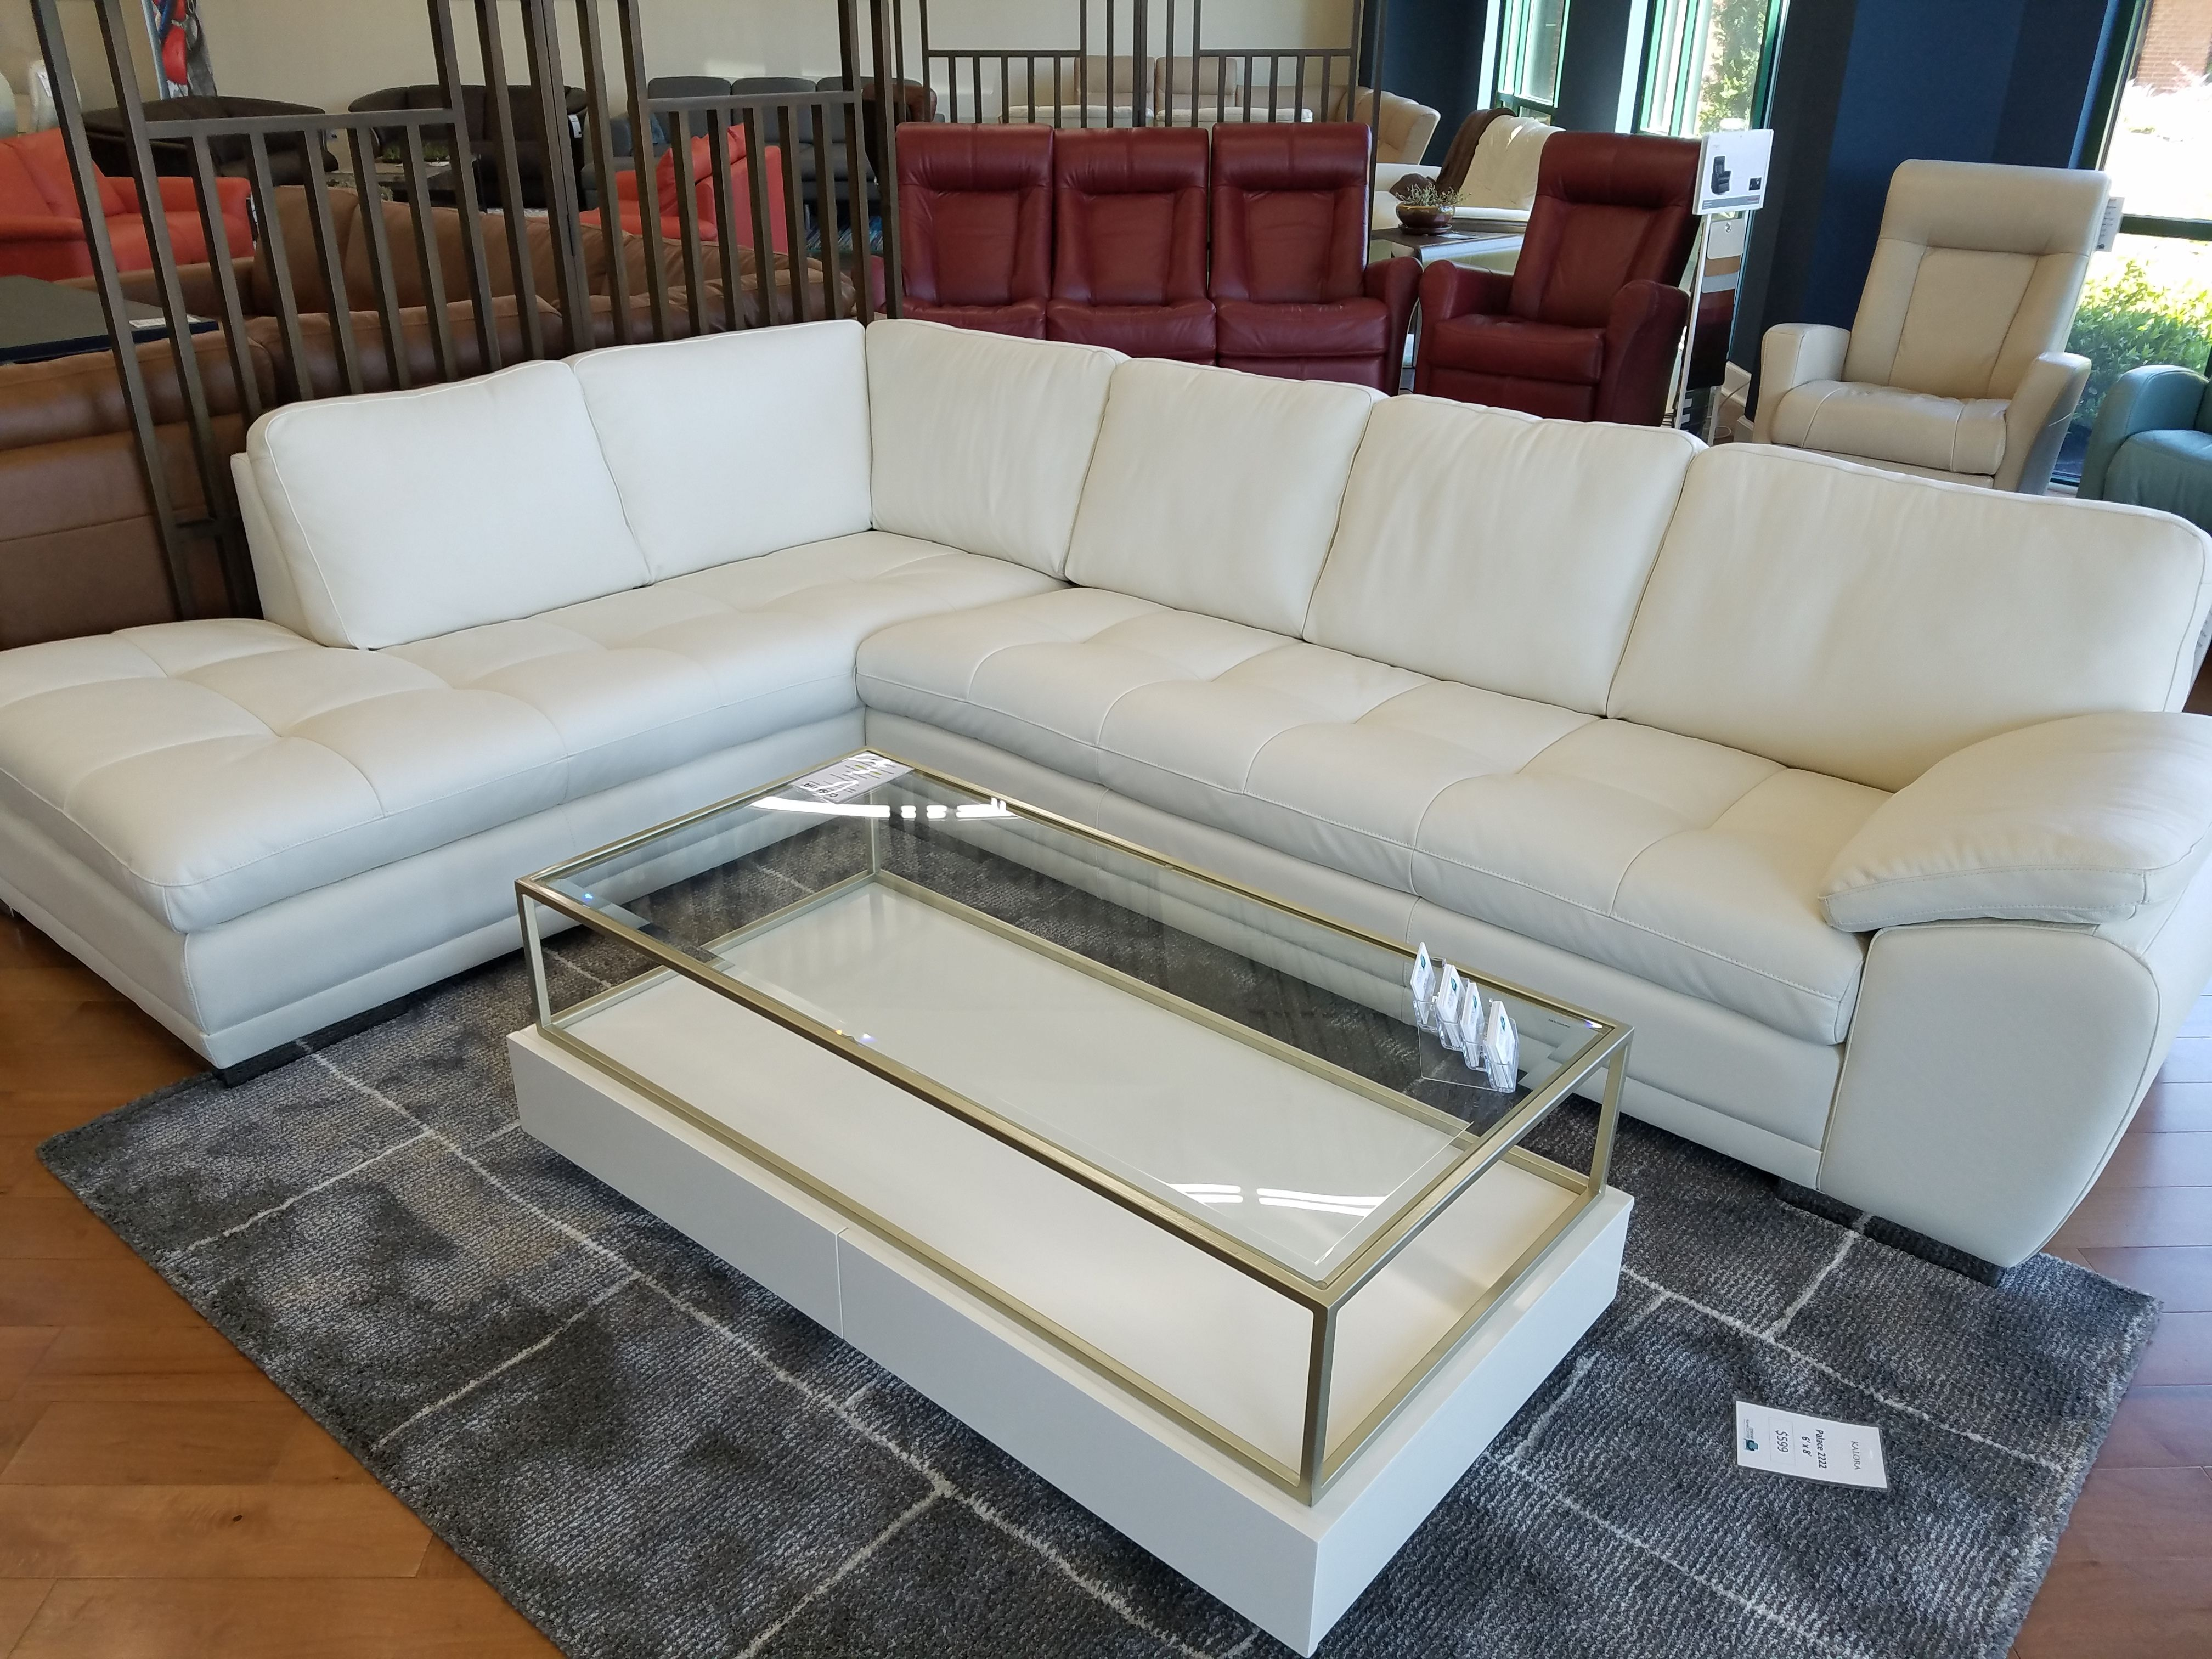 Palliser Miami Sectional LHF Chaise Bumper and RHF Sofa Leather ...